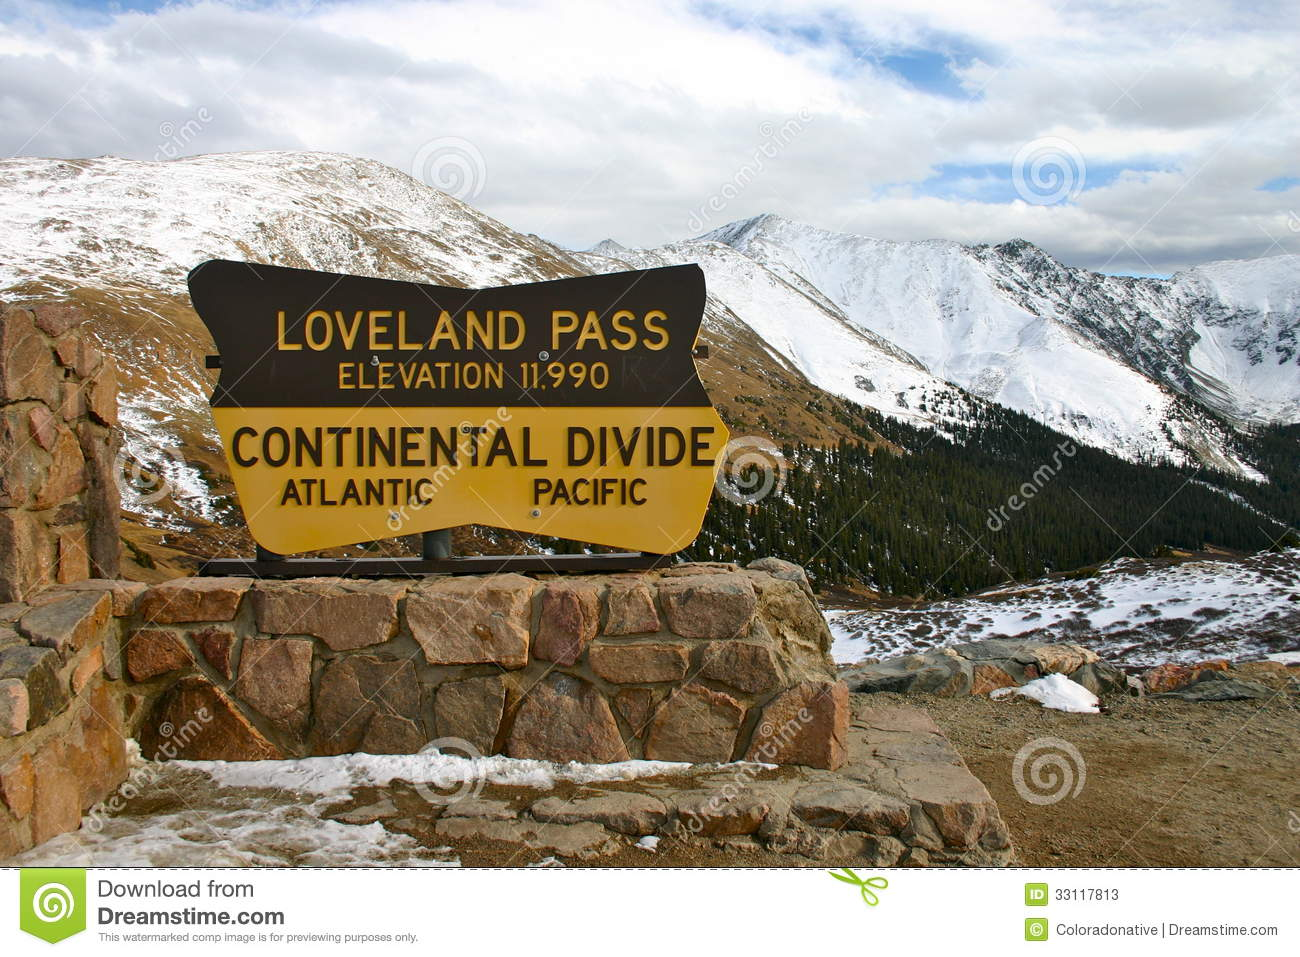 continental divide bbw dating site Meet single catholic women in continental divide interested in meeting new people to date online dating on zoosk is much more convenient than the old fashion bar scene methods of meeting people take the plunge into online dating and start meeting possible people to date in continental divide date smarter try zoosk online dating.